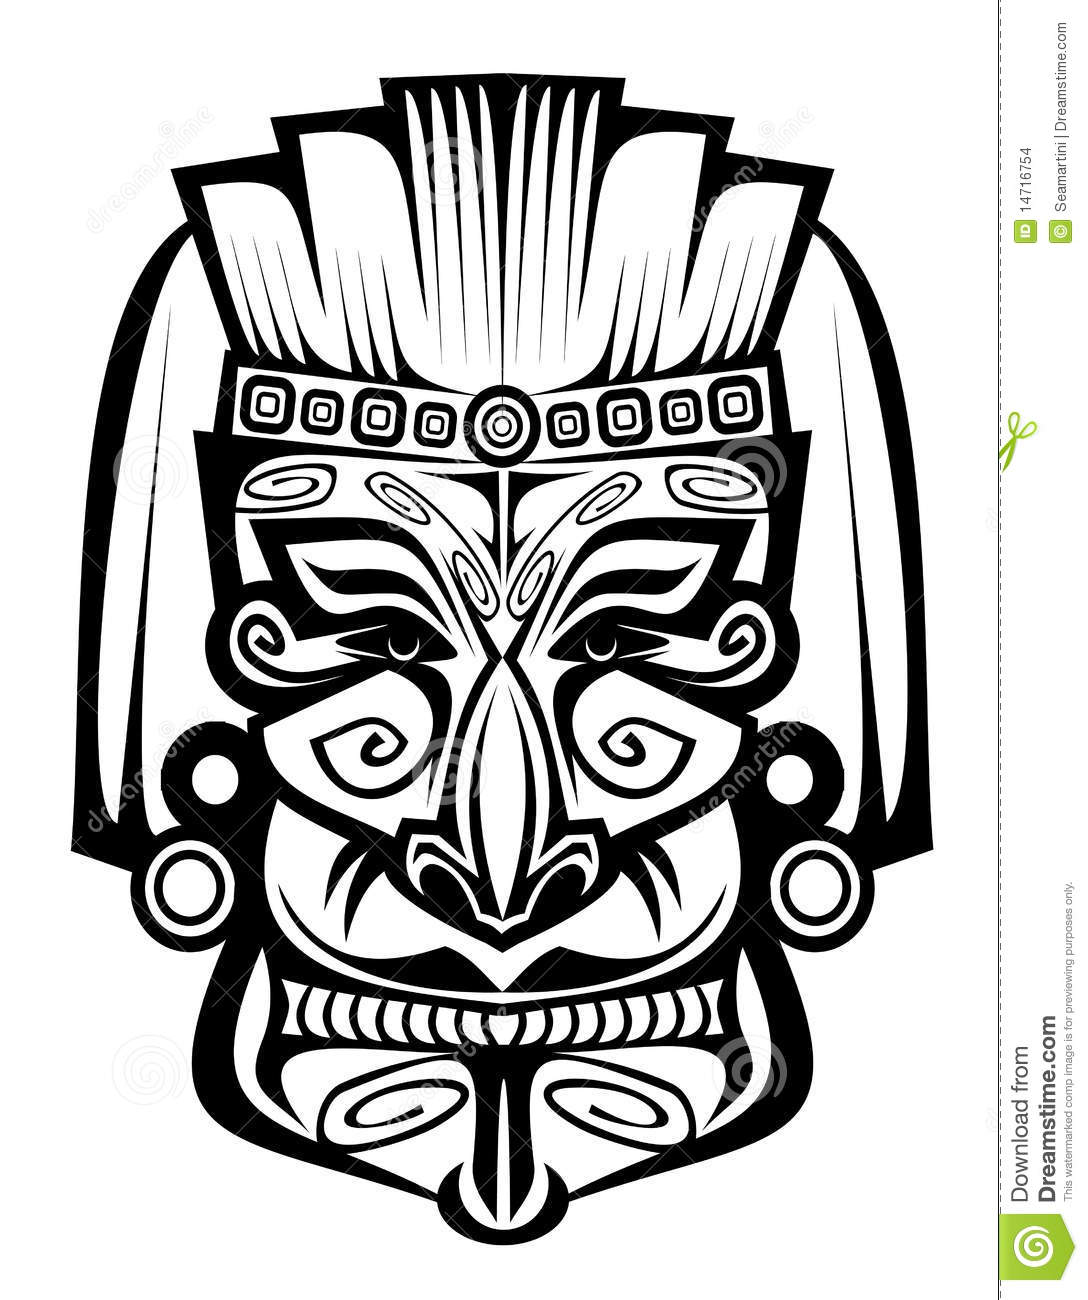 Mayan masks template search results calendar 2015 for Aztec mask template